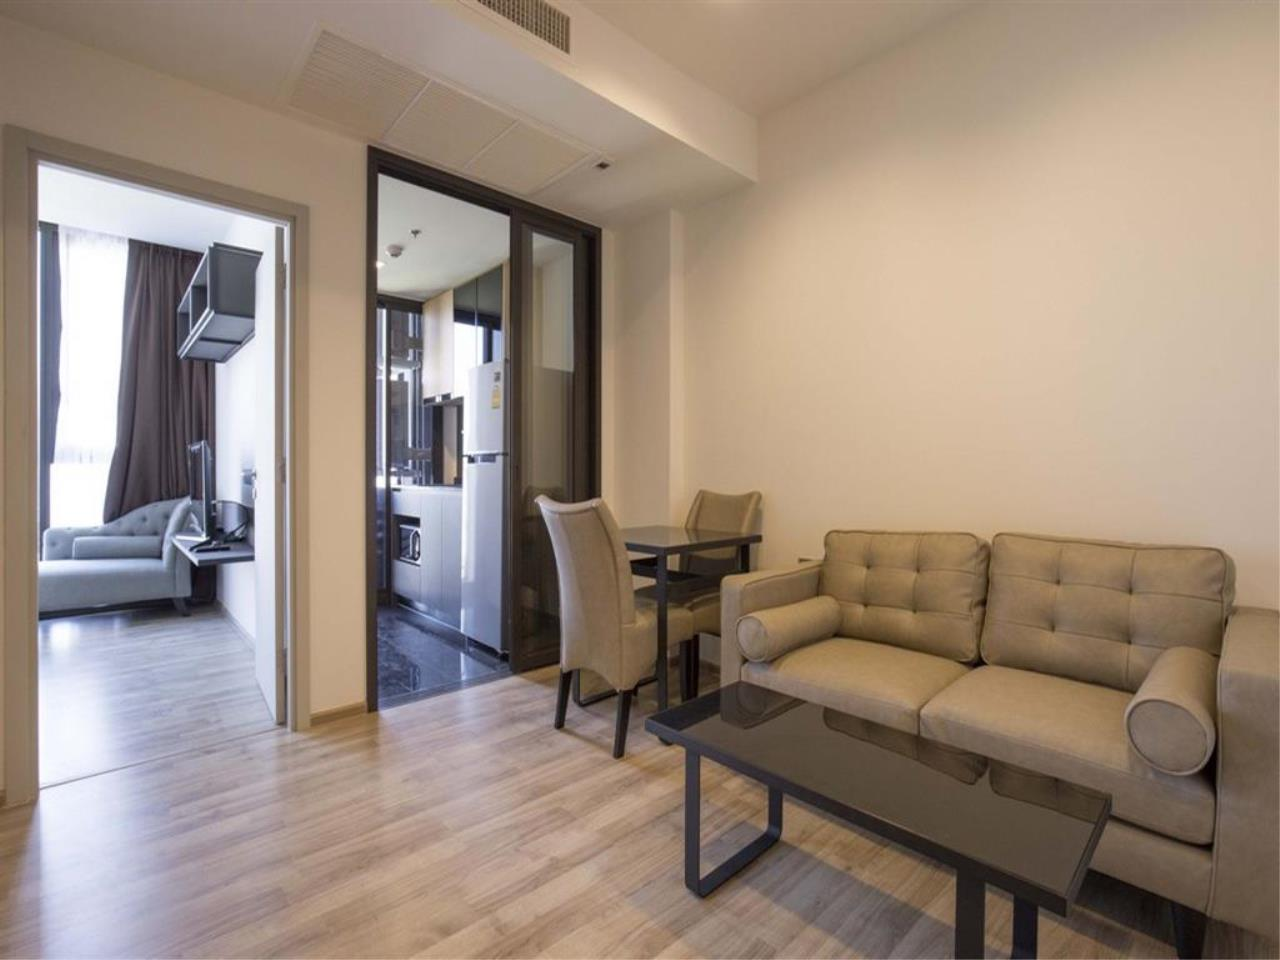 Plus Property Agency's Rent : CD177316 THE LINE JATUJAK-MOCHIT Condominium Paholyothin Bangkok 1